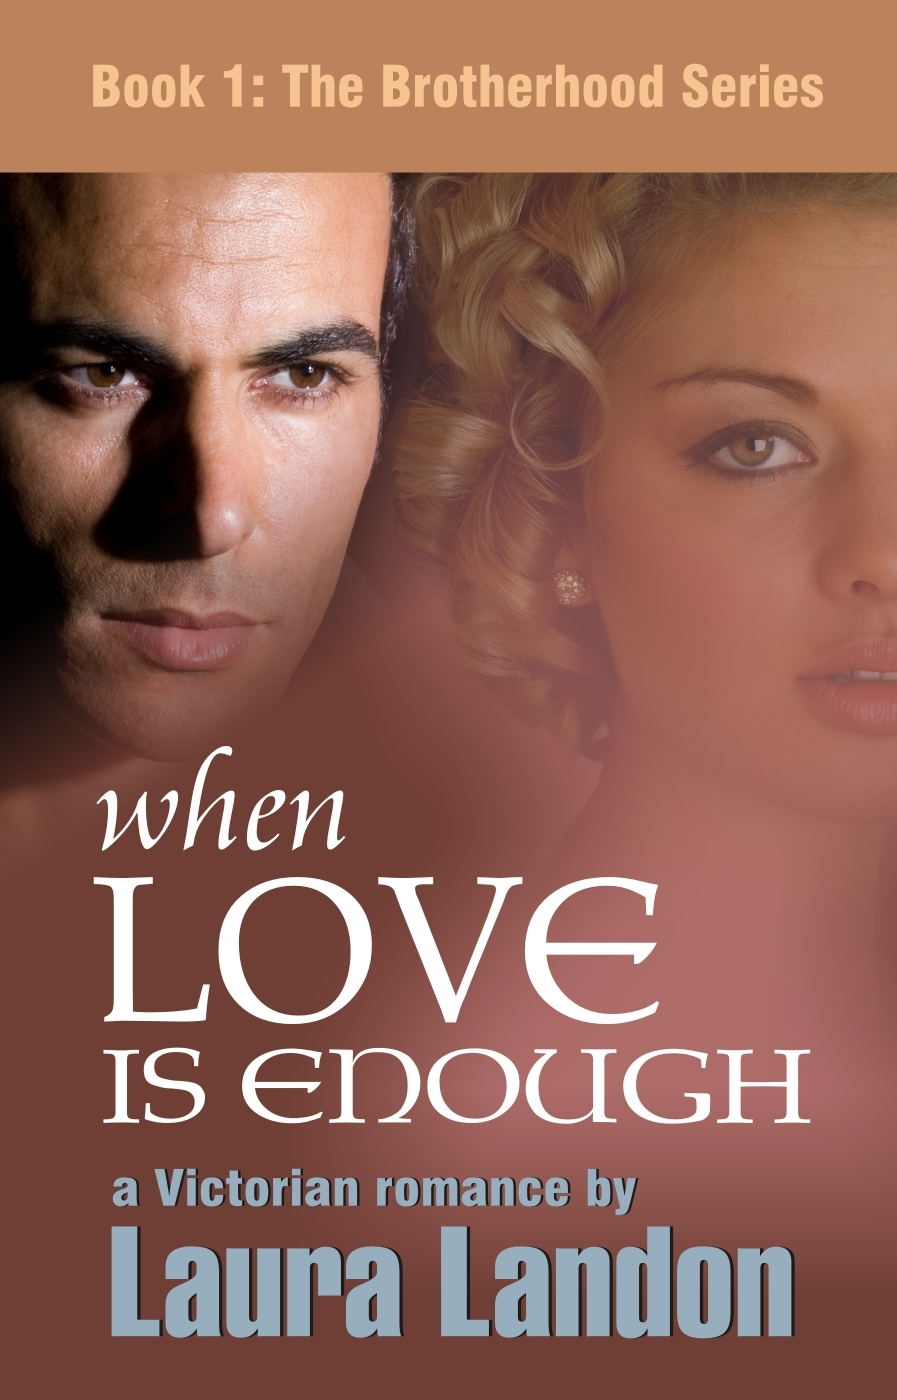 When Love is Enough By: Laura Landon